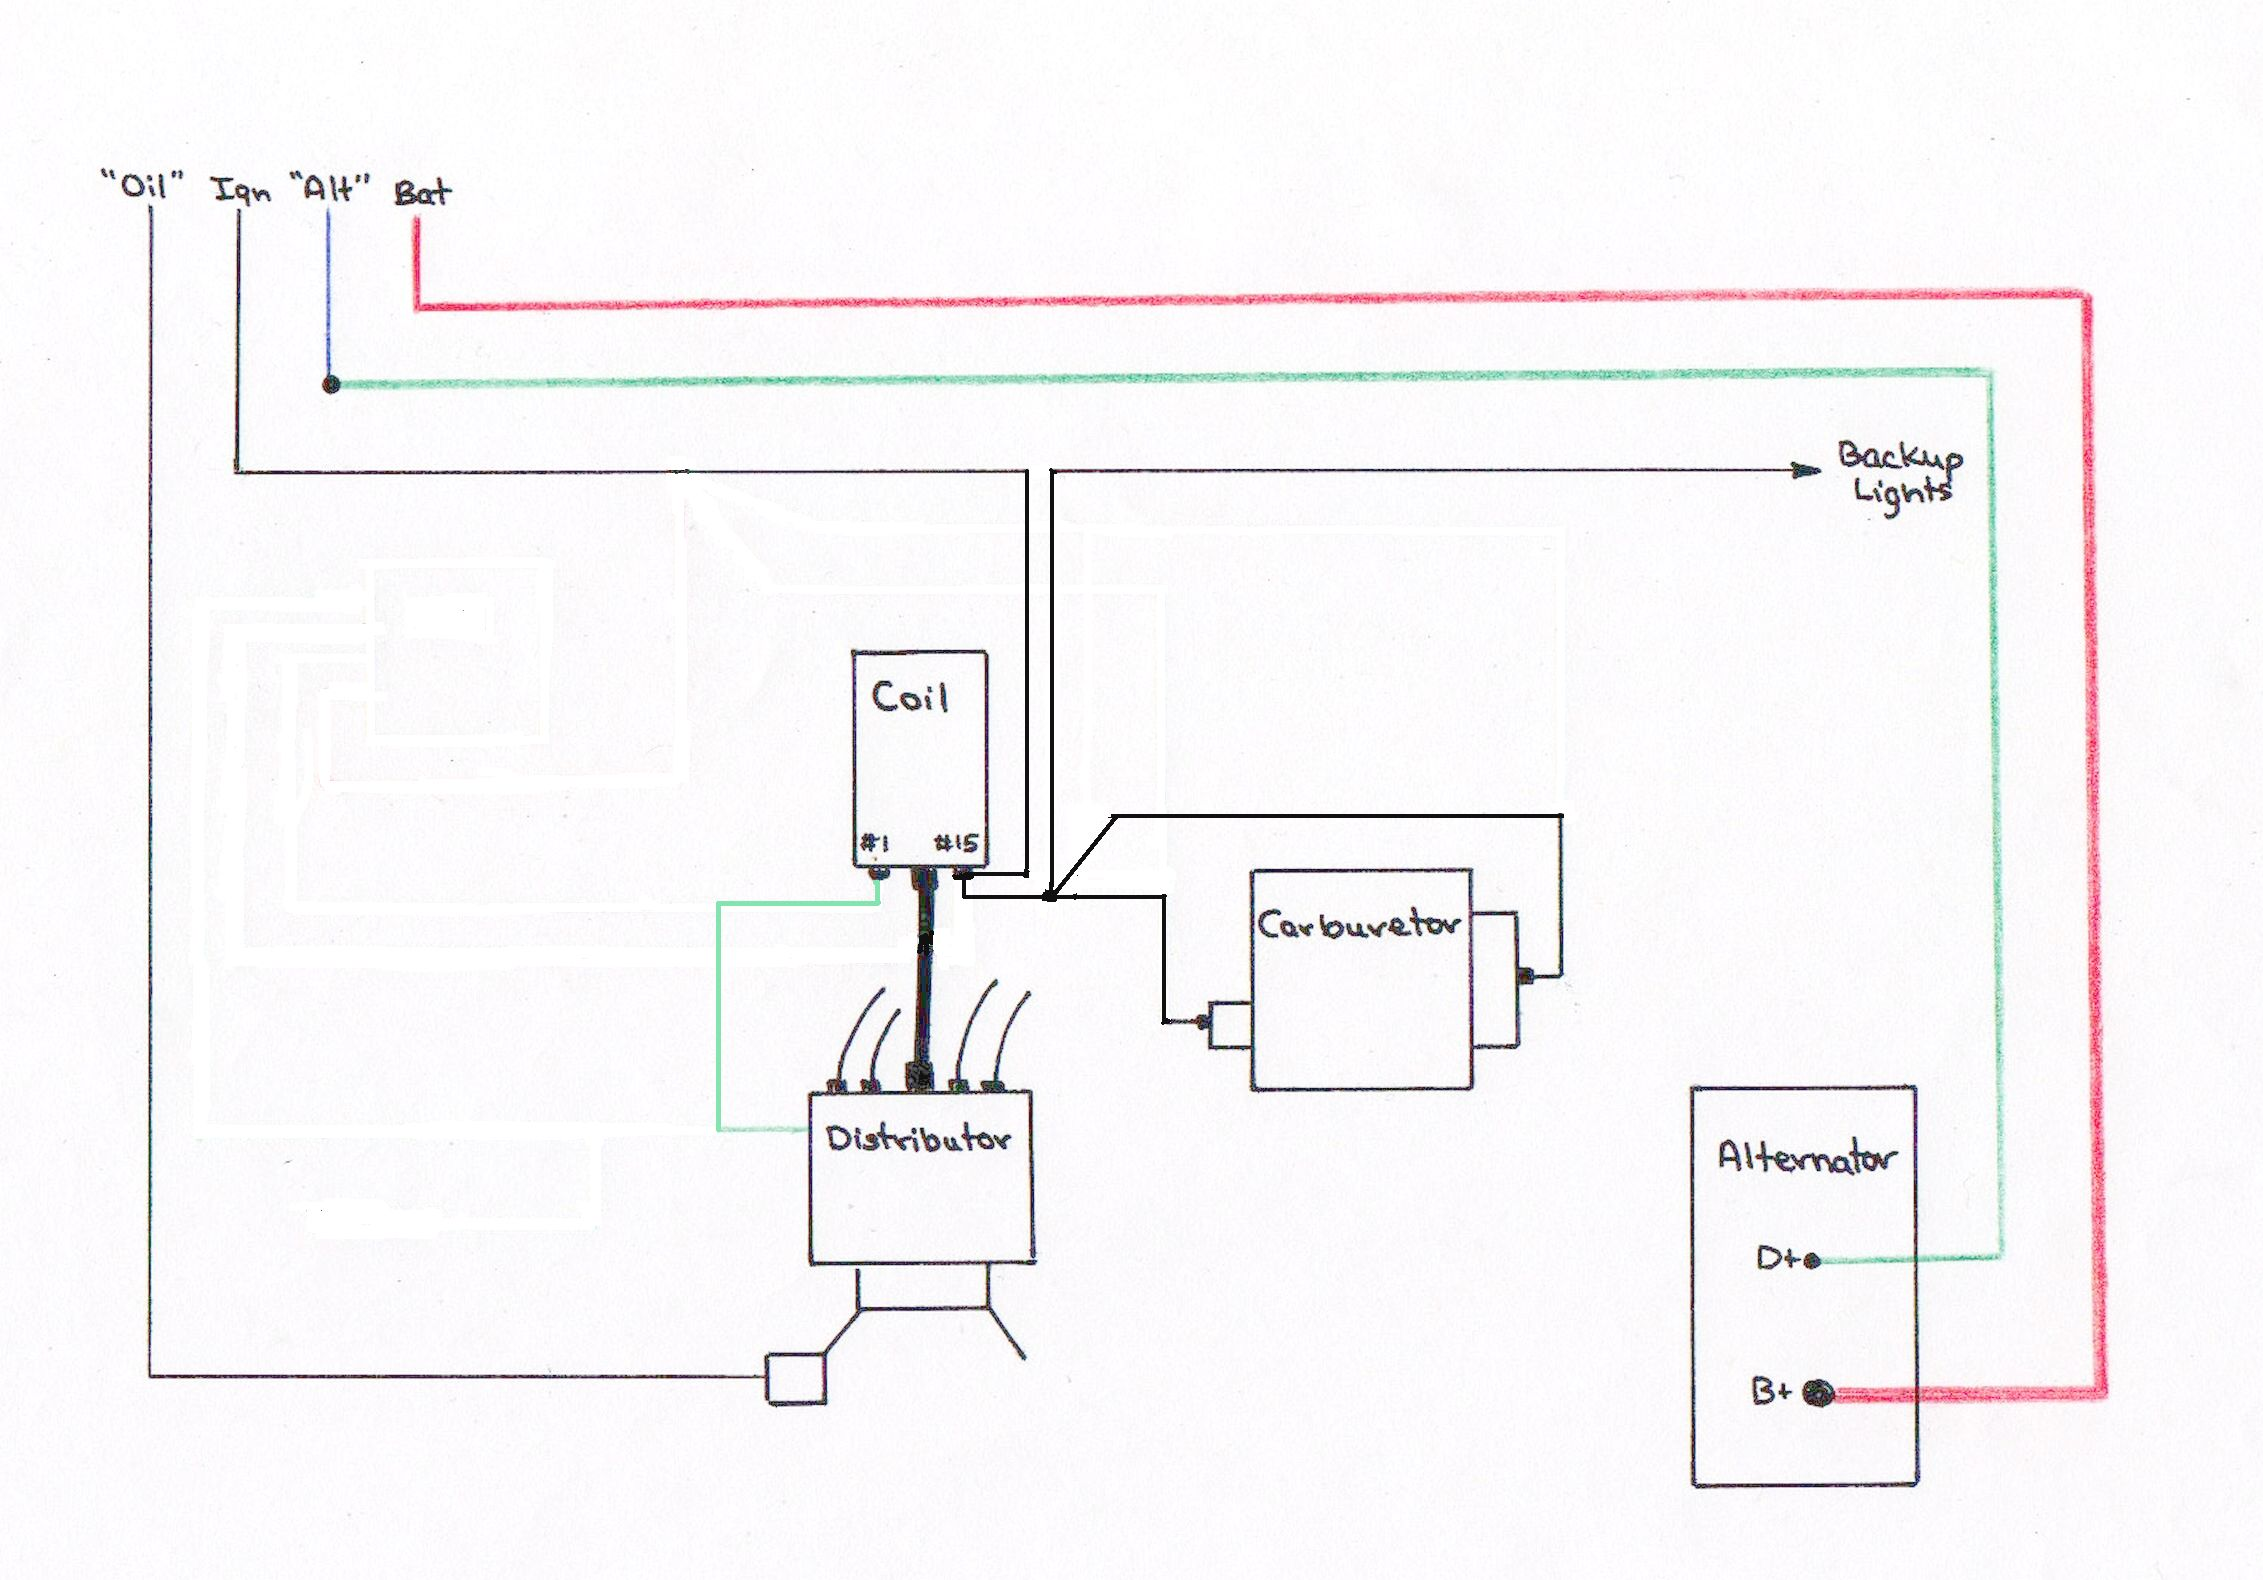 handdrawn_schematic alternator wiring valeo alternator regulator wiring diagram at soozxer.org